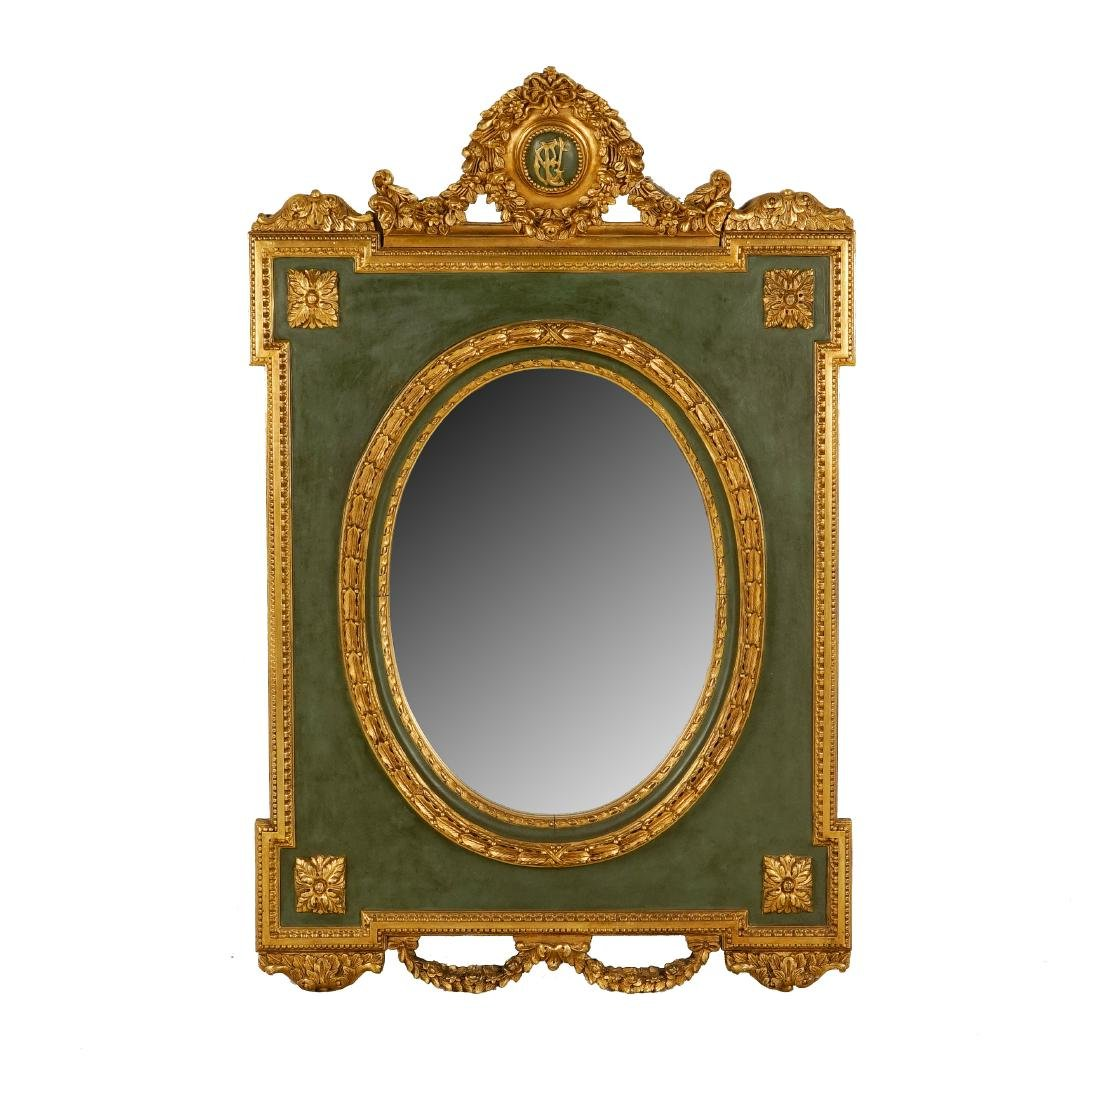 LARGE LOUIS XVI-STYLE CARVED GILTWOOD MIRROR - 2